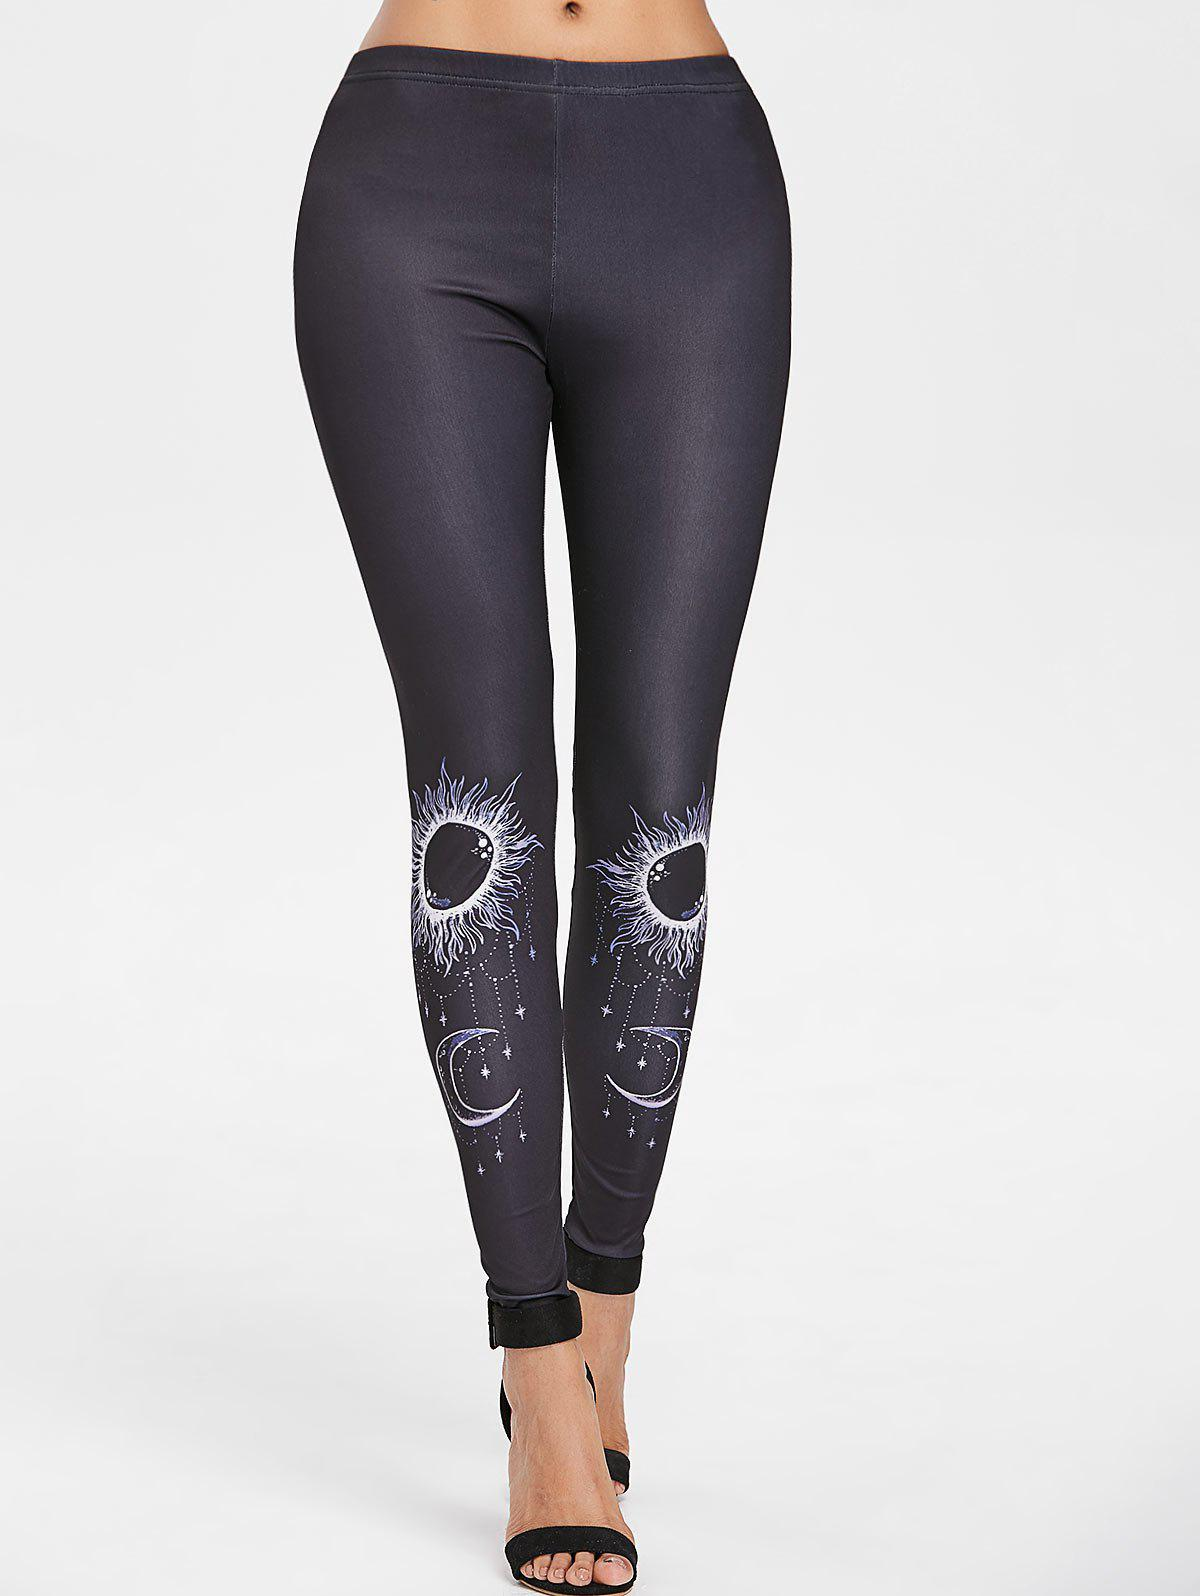 Tribal Totem Printed Workout Leggings - BLACK XL